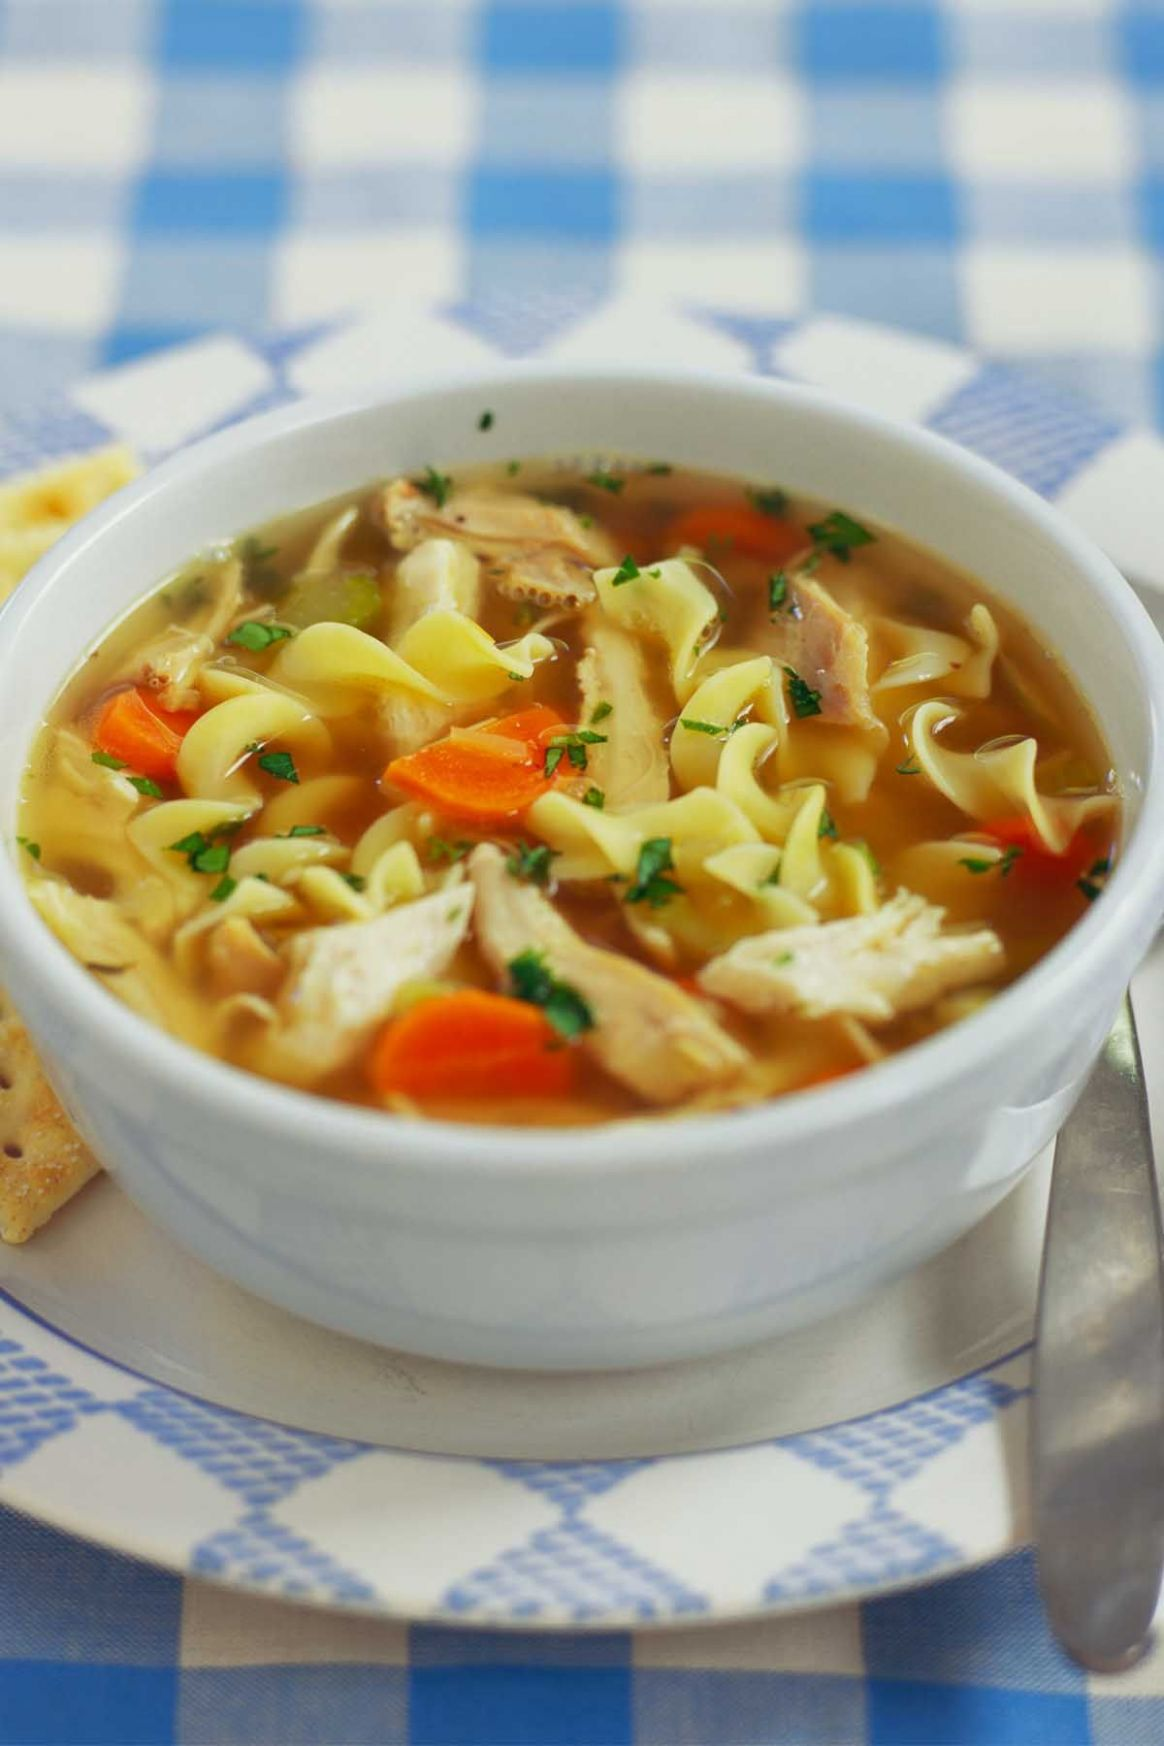 12 Best Chicken Soup Recipes - Easy Chicken Soup Recipes